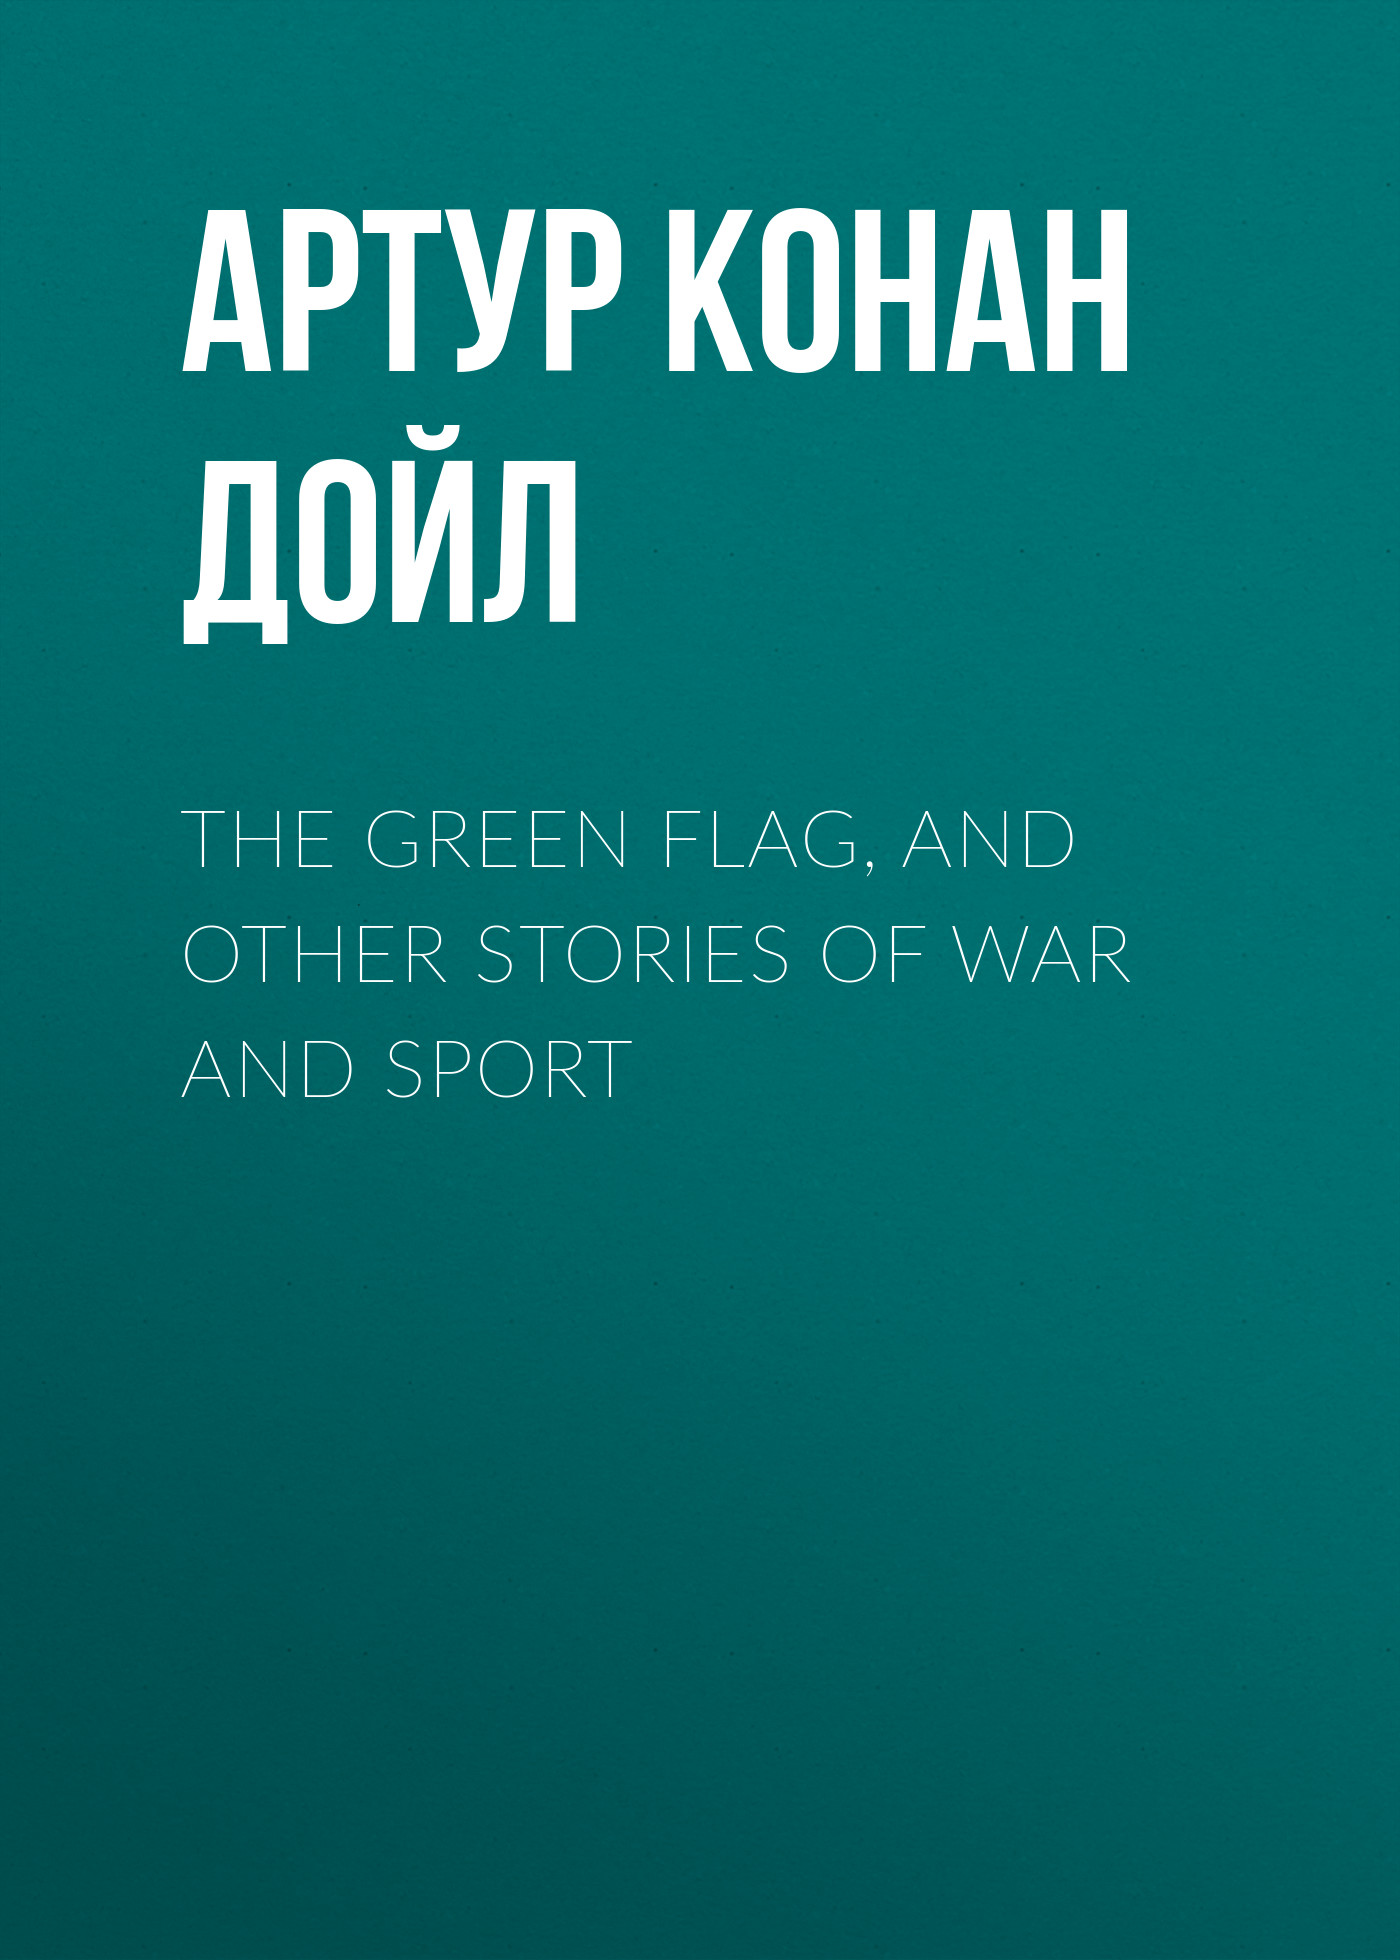 Артур Конан Дойл The Green Flag, and Other Stories of War and Sport артур конан дойл the valley of fear